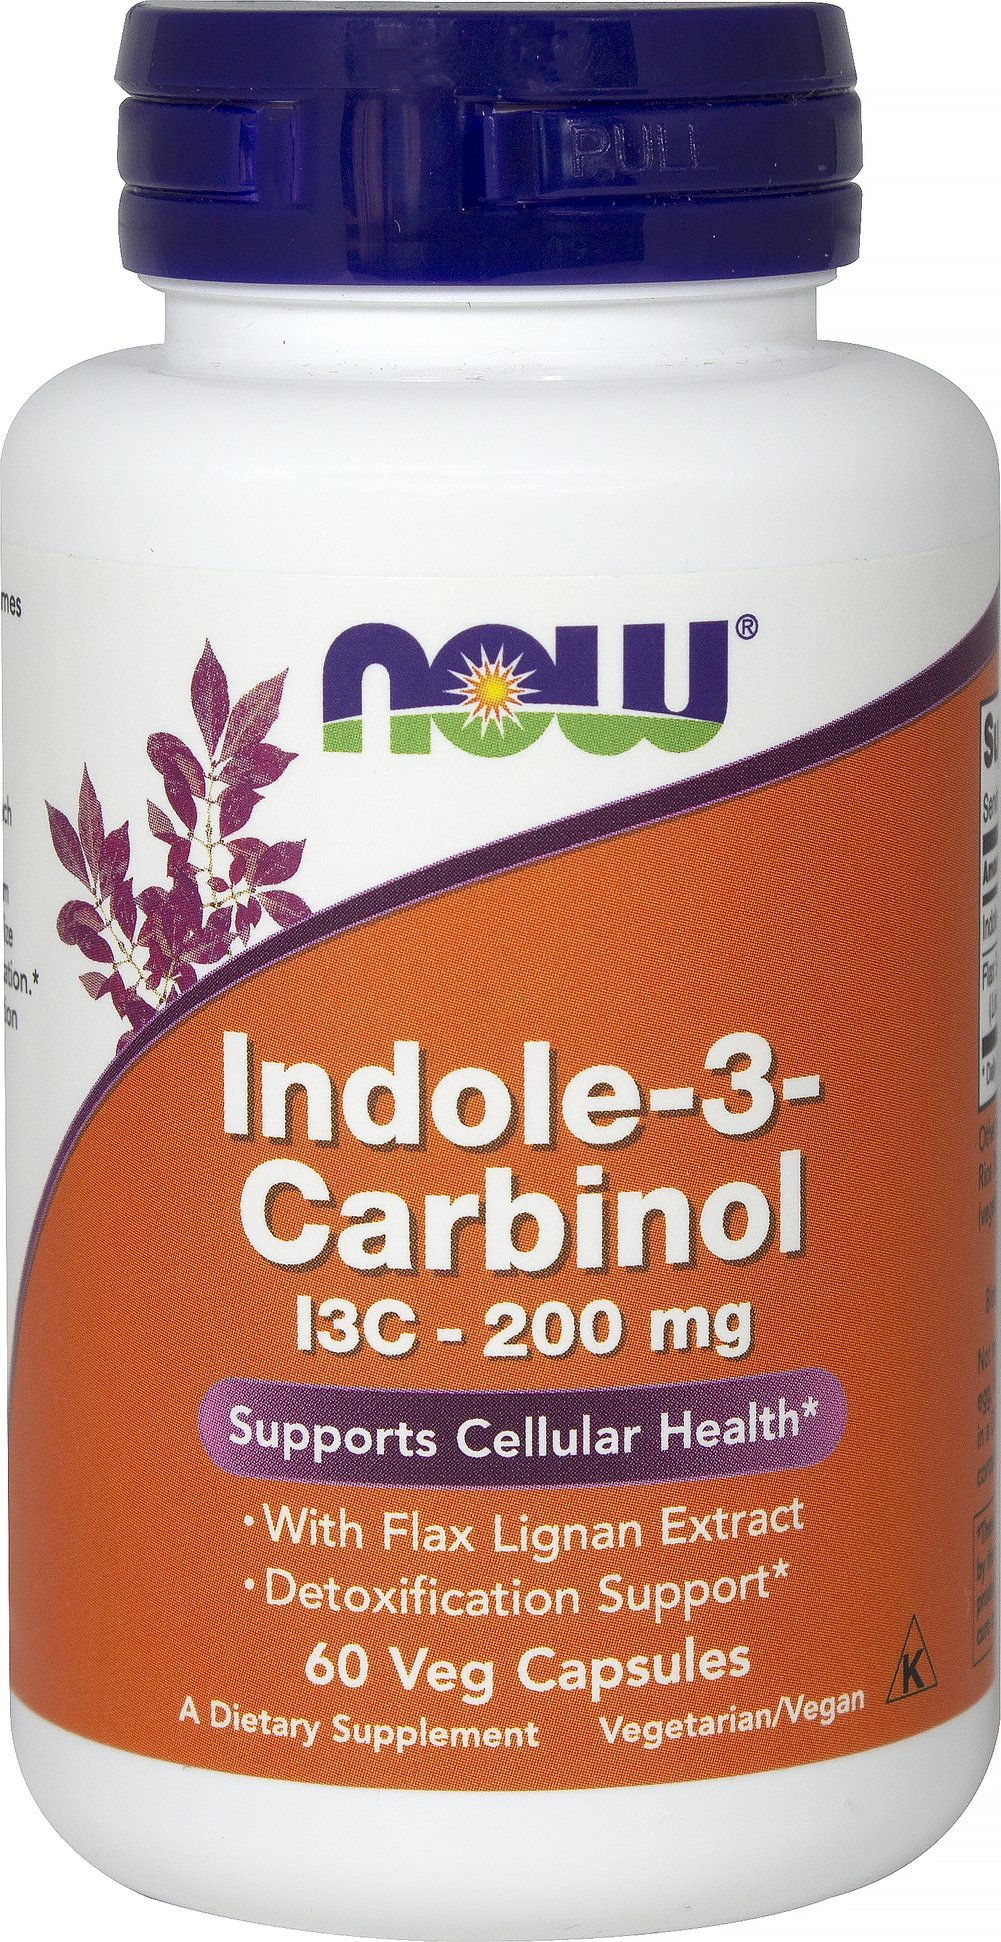 Indole-3-Carbinol 200 mg <p>From the Manufacturer's Label:<br /><br />• Supports Cellular Health**<br />• With Flax Lignans</p><p>Cruciferous vegetables (cabbage, broccoli, cauliflower, etc.) are uniquely abundant in a sulfur-containing compound called Indole-3-Carbinol (I3C). In the acidic stomach environment, I3C is converted into derivative compounds shown to neutralize free radicals and support healthy cell cycle regulation. DIM (diindolemethane) is a